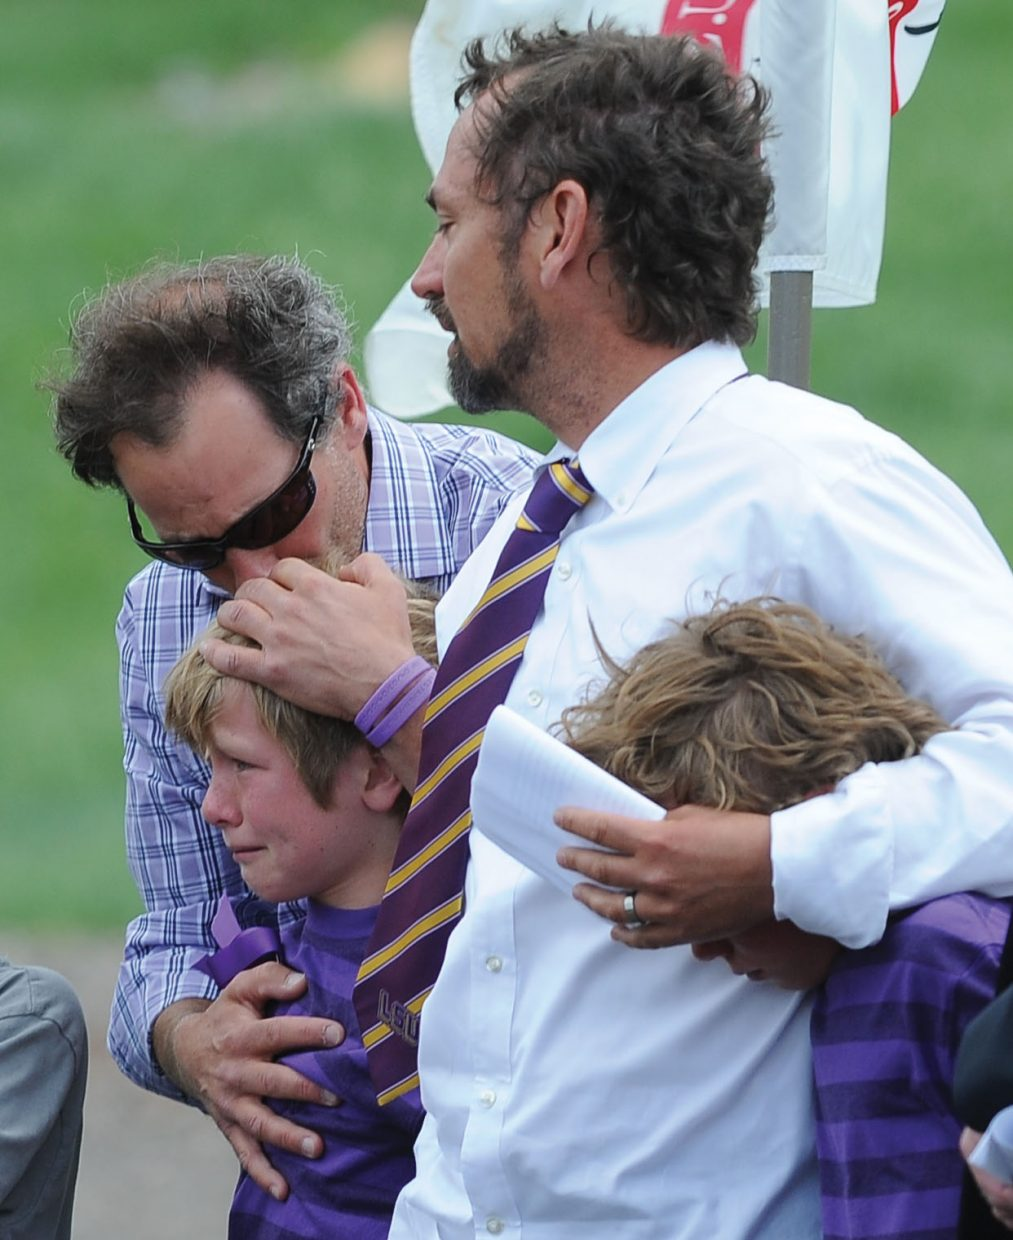 """Mike Kirlan hugs Oliver Cardillo during Monday afternoon's memorial service for Kirlan's son, Asher Lesyshen-Kirlan, at the base of the Howelsen Hill jump complex. The boys came on stage to sing the """"Star Spangled Banner"""" as part of a tribute to the 9-year-old boy, who died last week. Oliver's father, John Cardillo, middle, and his brother, Henry, also were on stage for the tribute."""